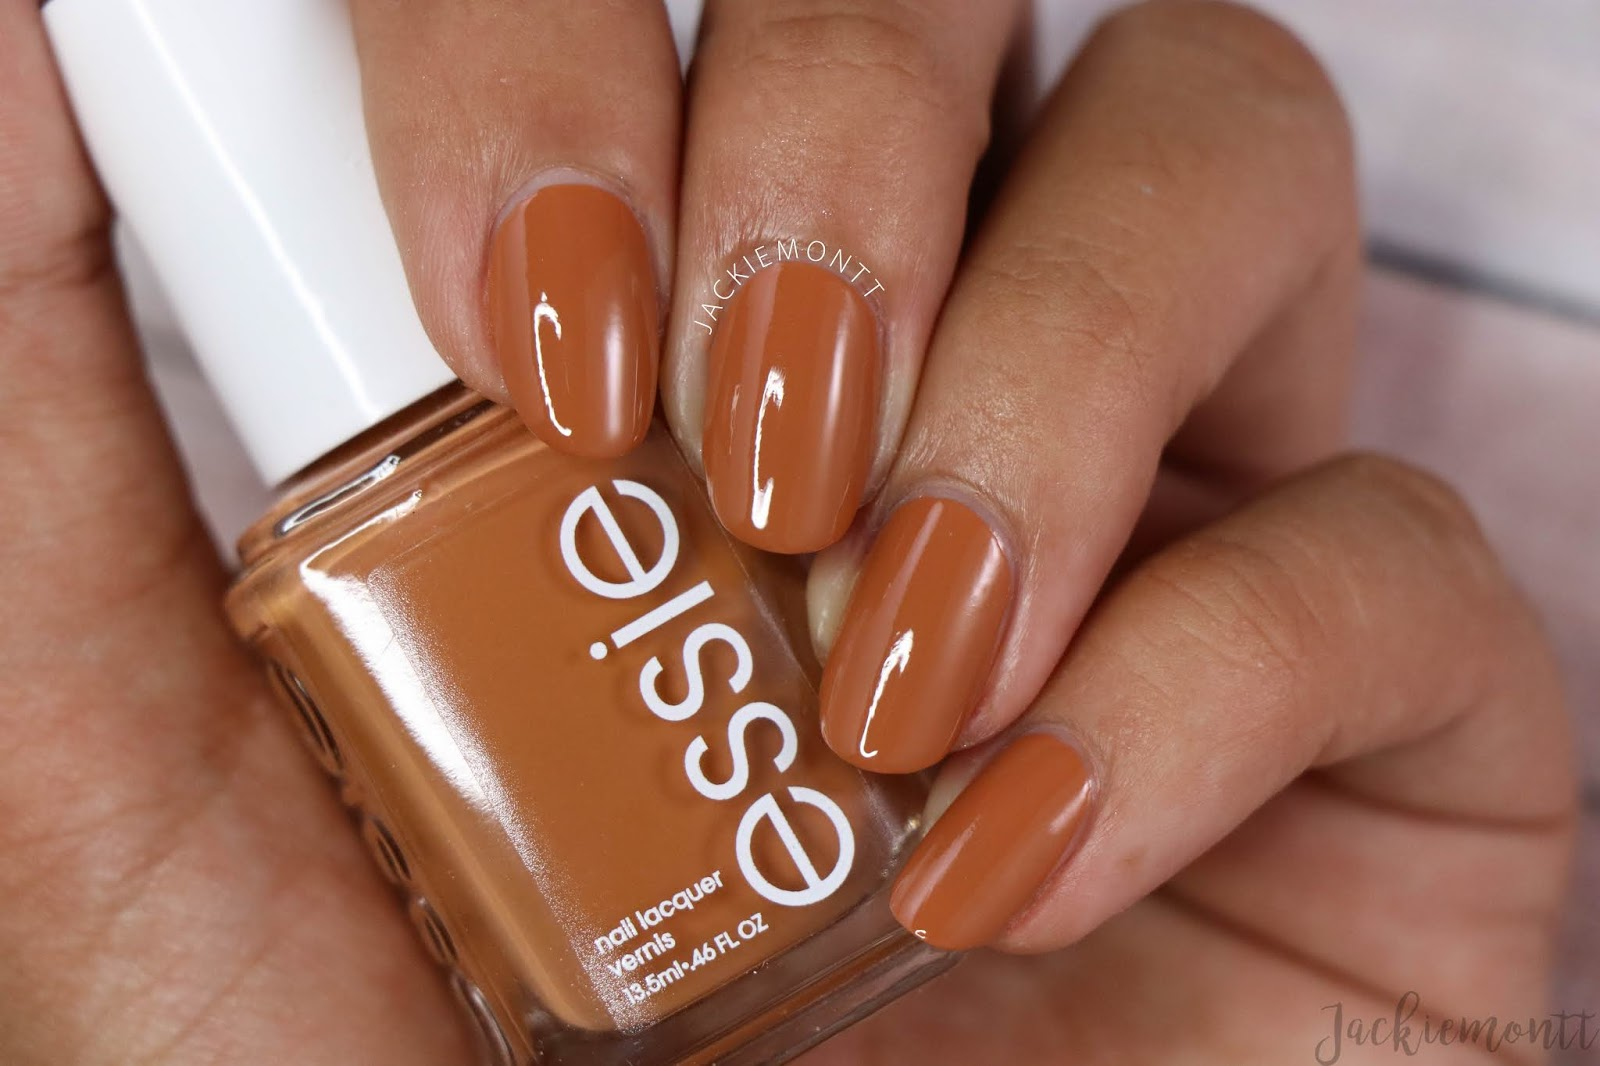 Essie Fall 2019 Collection Swatches And Review Jackiemontt